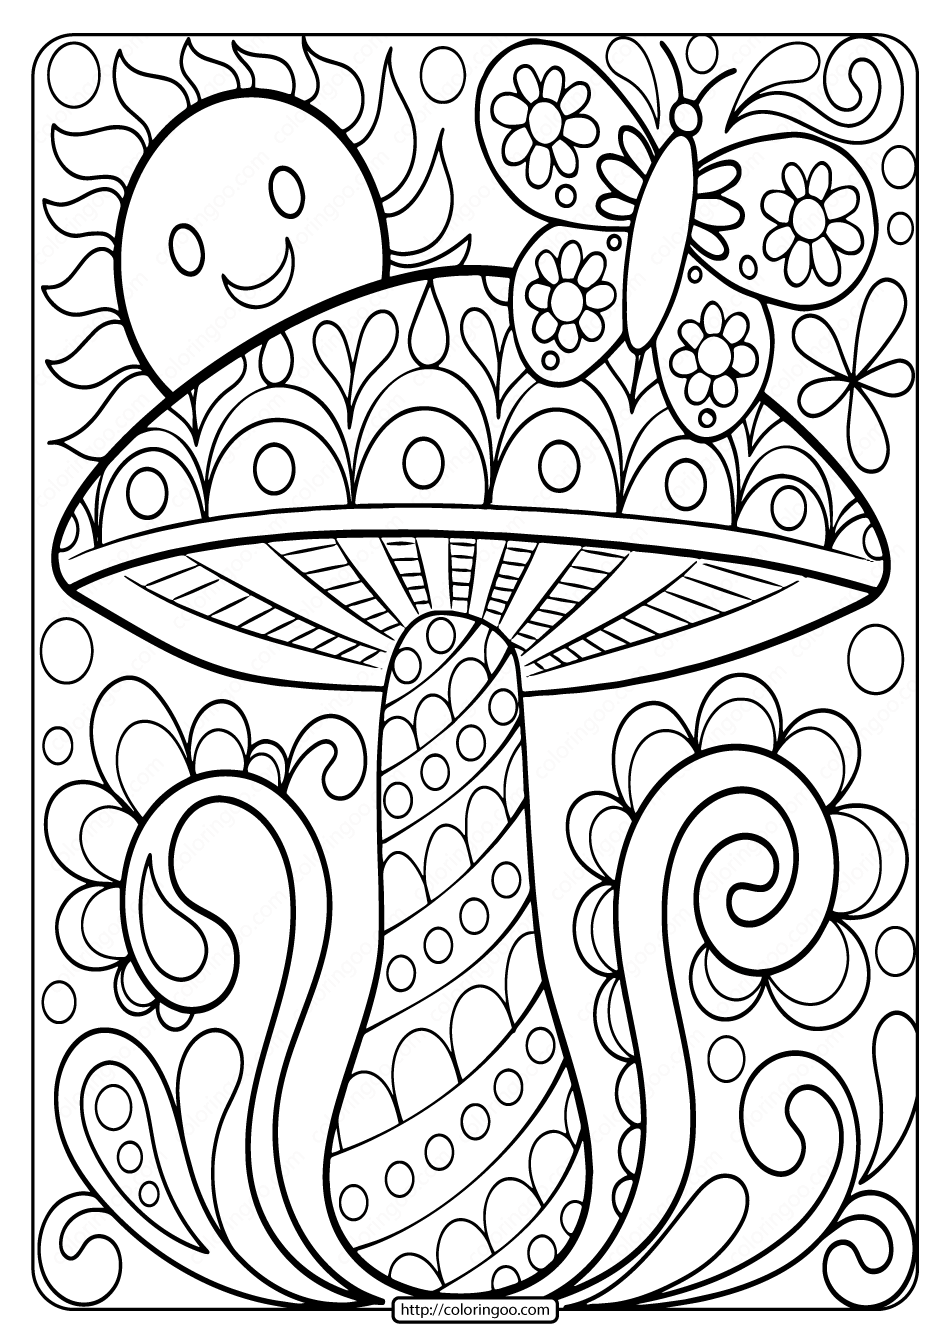 free printable coloring page cartoon coloring pages to download and print for free coloring printable free page